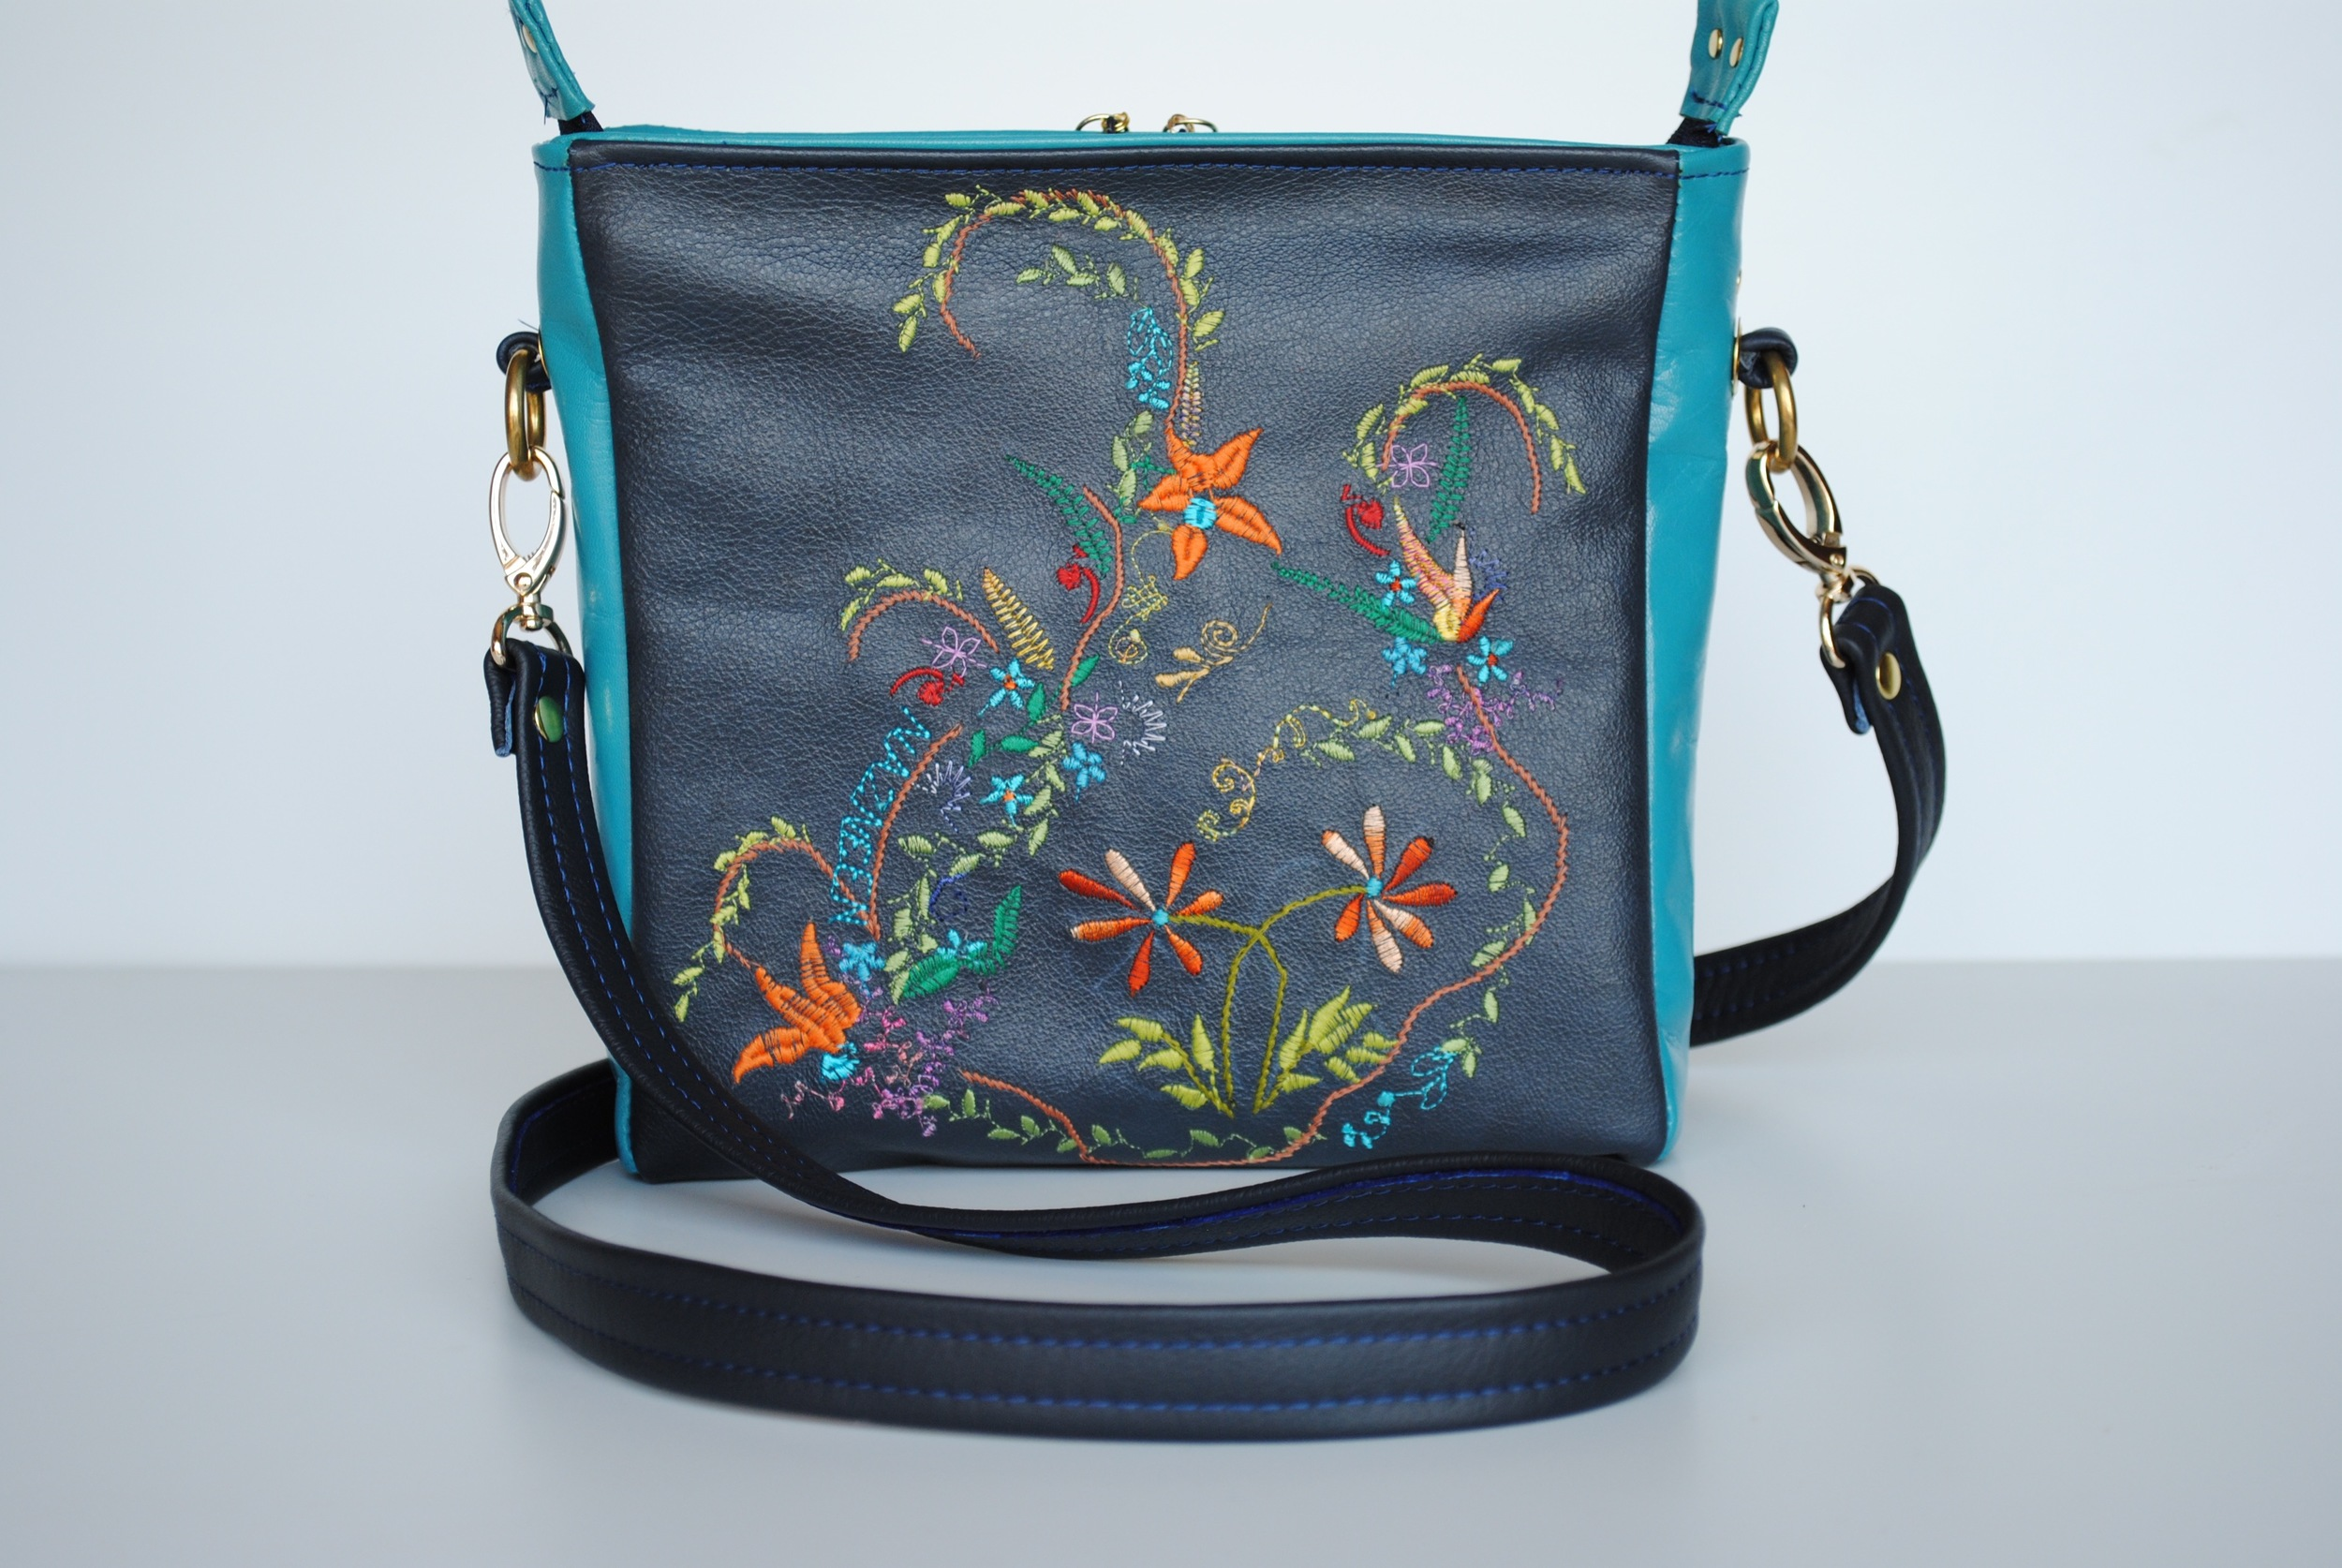 Sophisticated Garden Embroidered In Blue and Turquoise Leather Crossbody